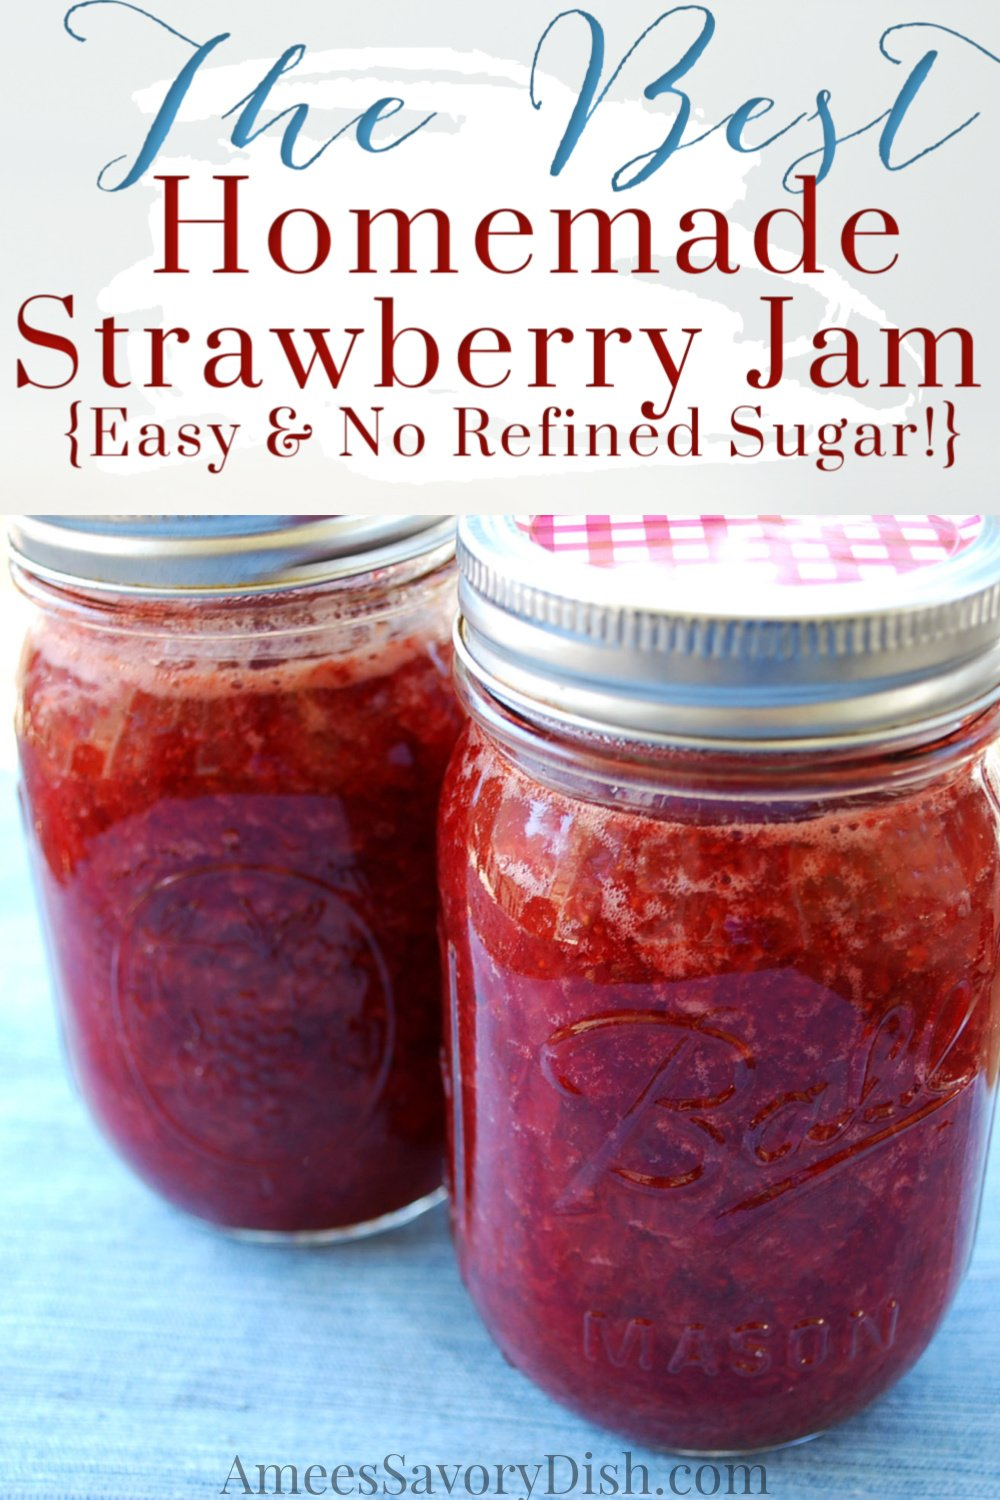 This delicious homemade strawberry jam recipe is made with fruit juice and agave nectar instead of refined sugar. No canning required with this easy jam recipe! #strawberryjam #easyjam #freezerjam #jamrecipe via @Ameessavorydish